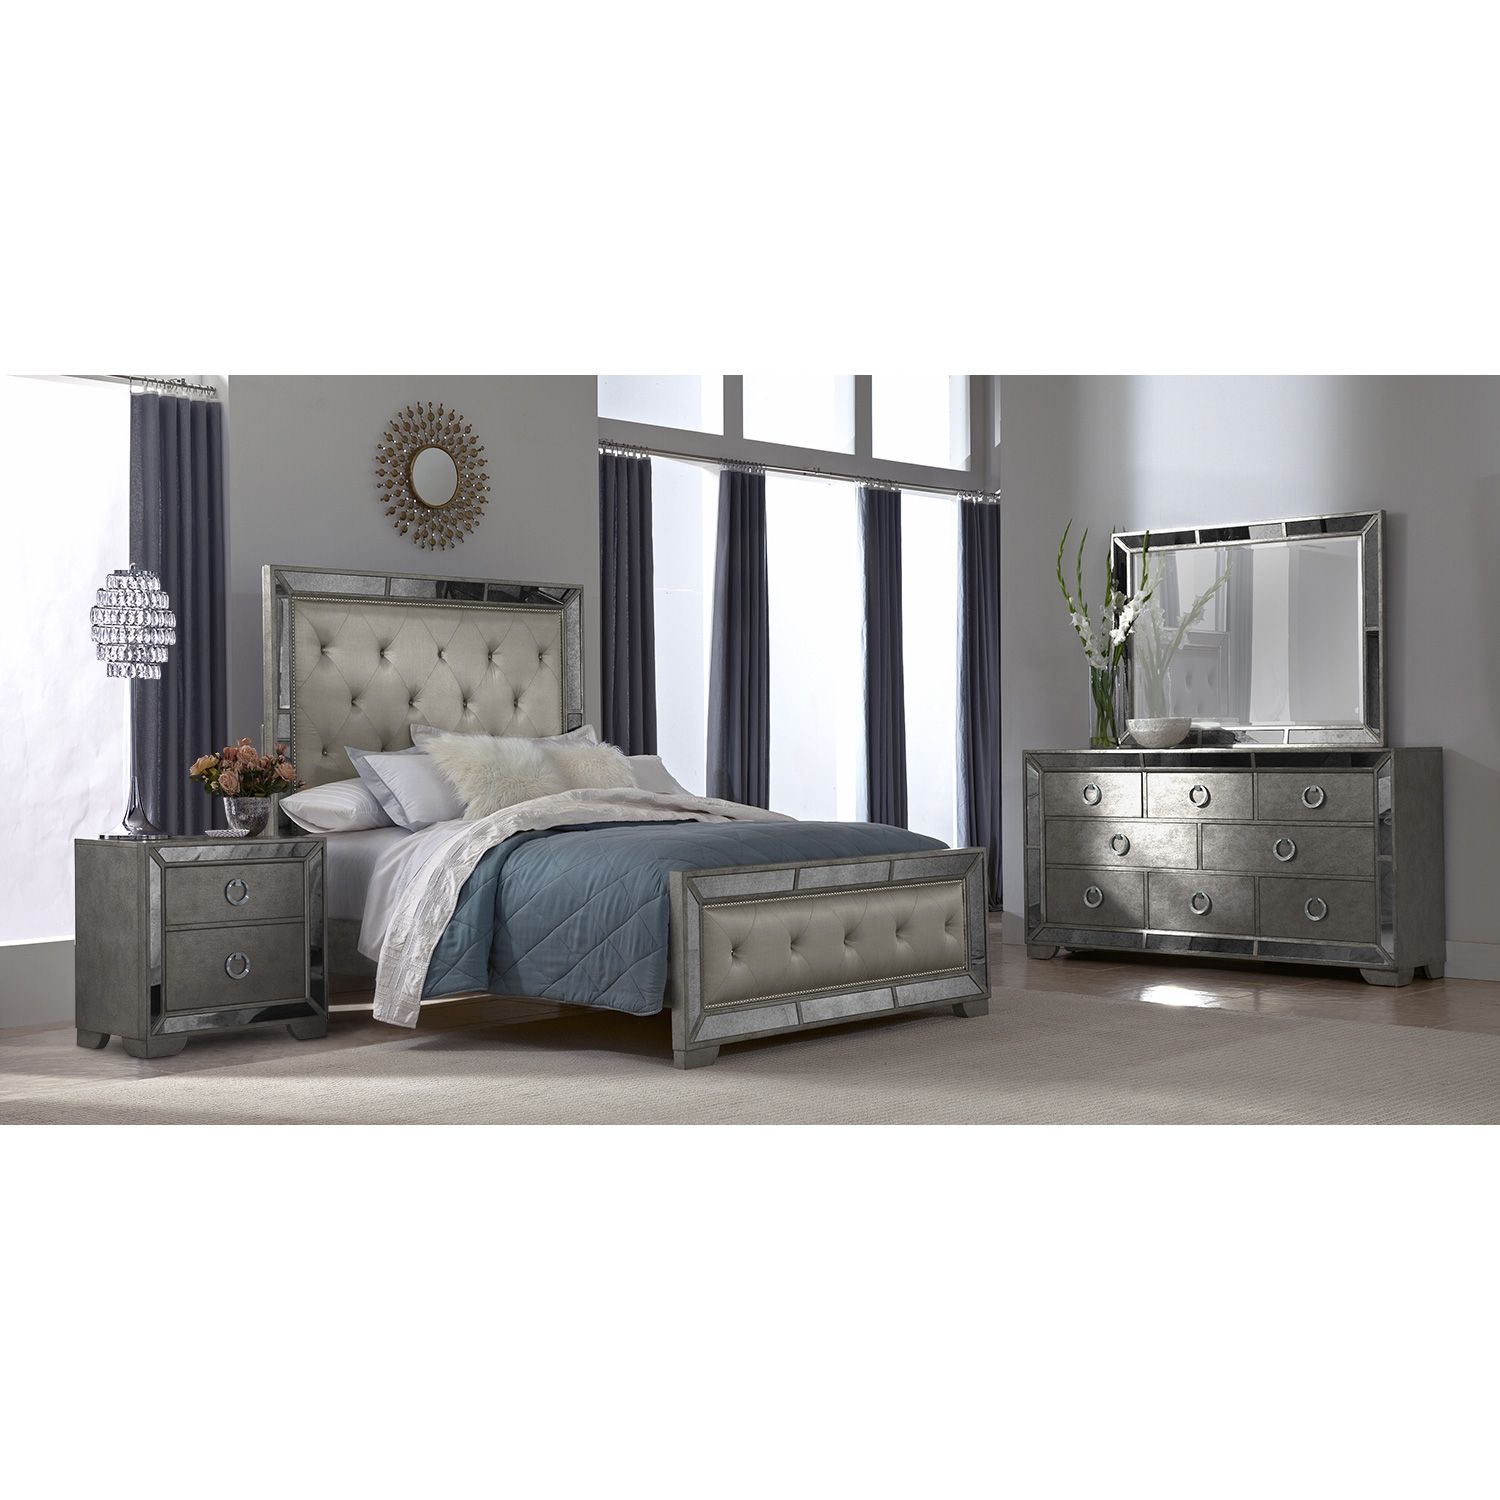 King Bedroom   Value City Furniture. Angelina 6 Pc  King Bedroom   American Signature Furniture   Home